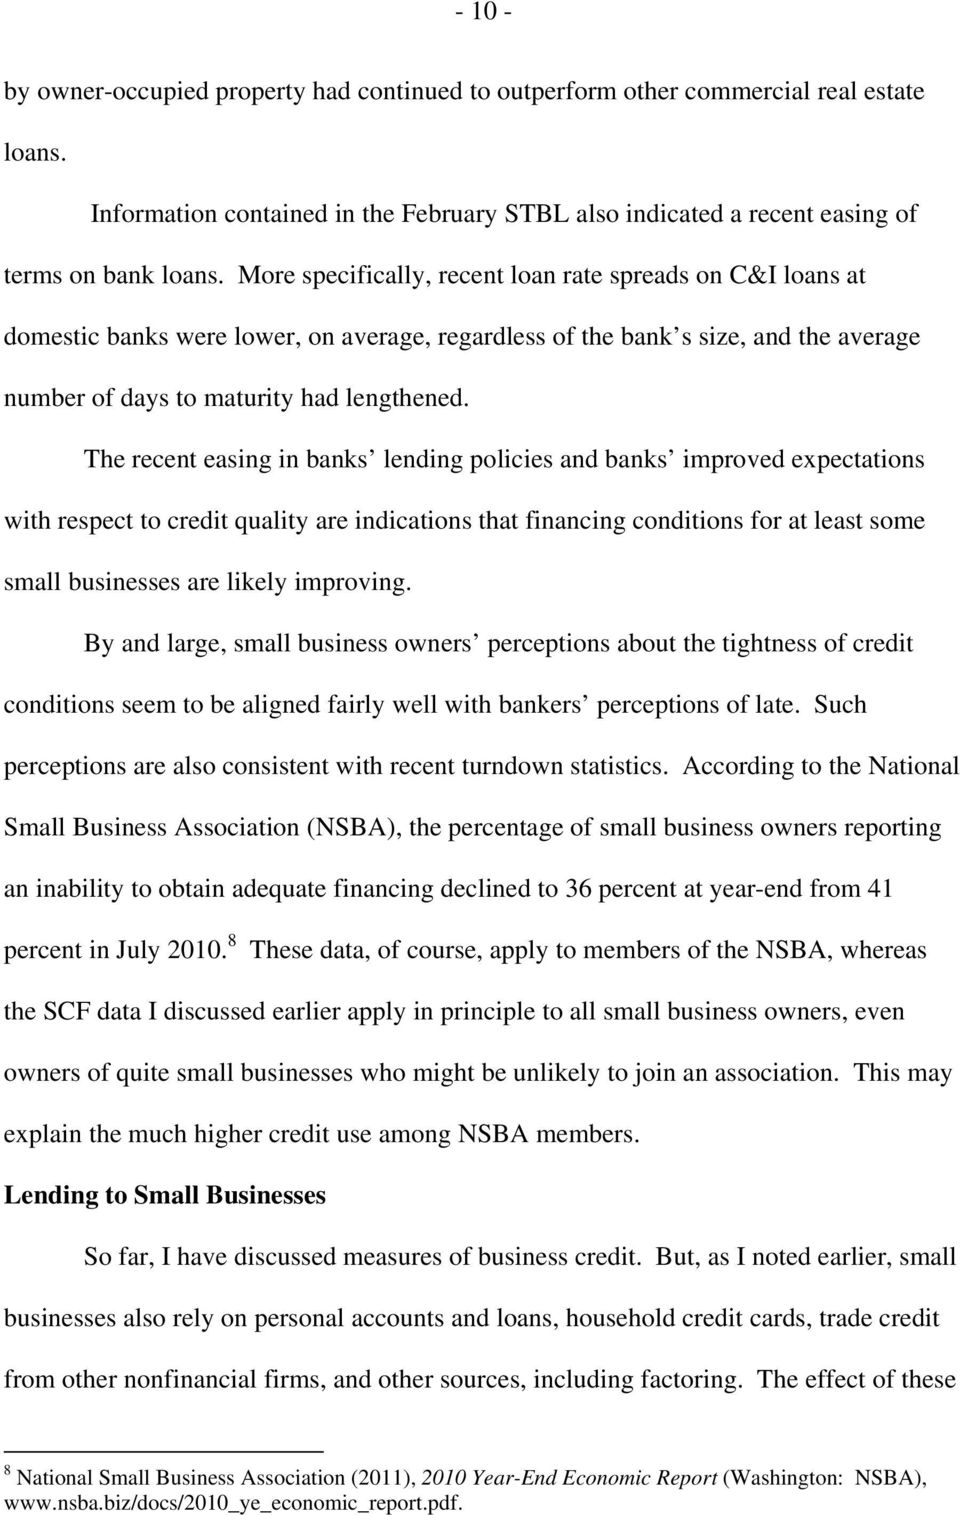 The recent easing in banks lending policies and banks improved expectations with respect to credit quality are indications that financing conditions for at least some small businesses are likely